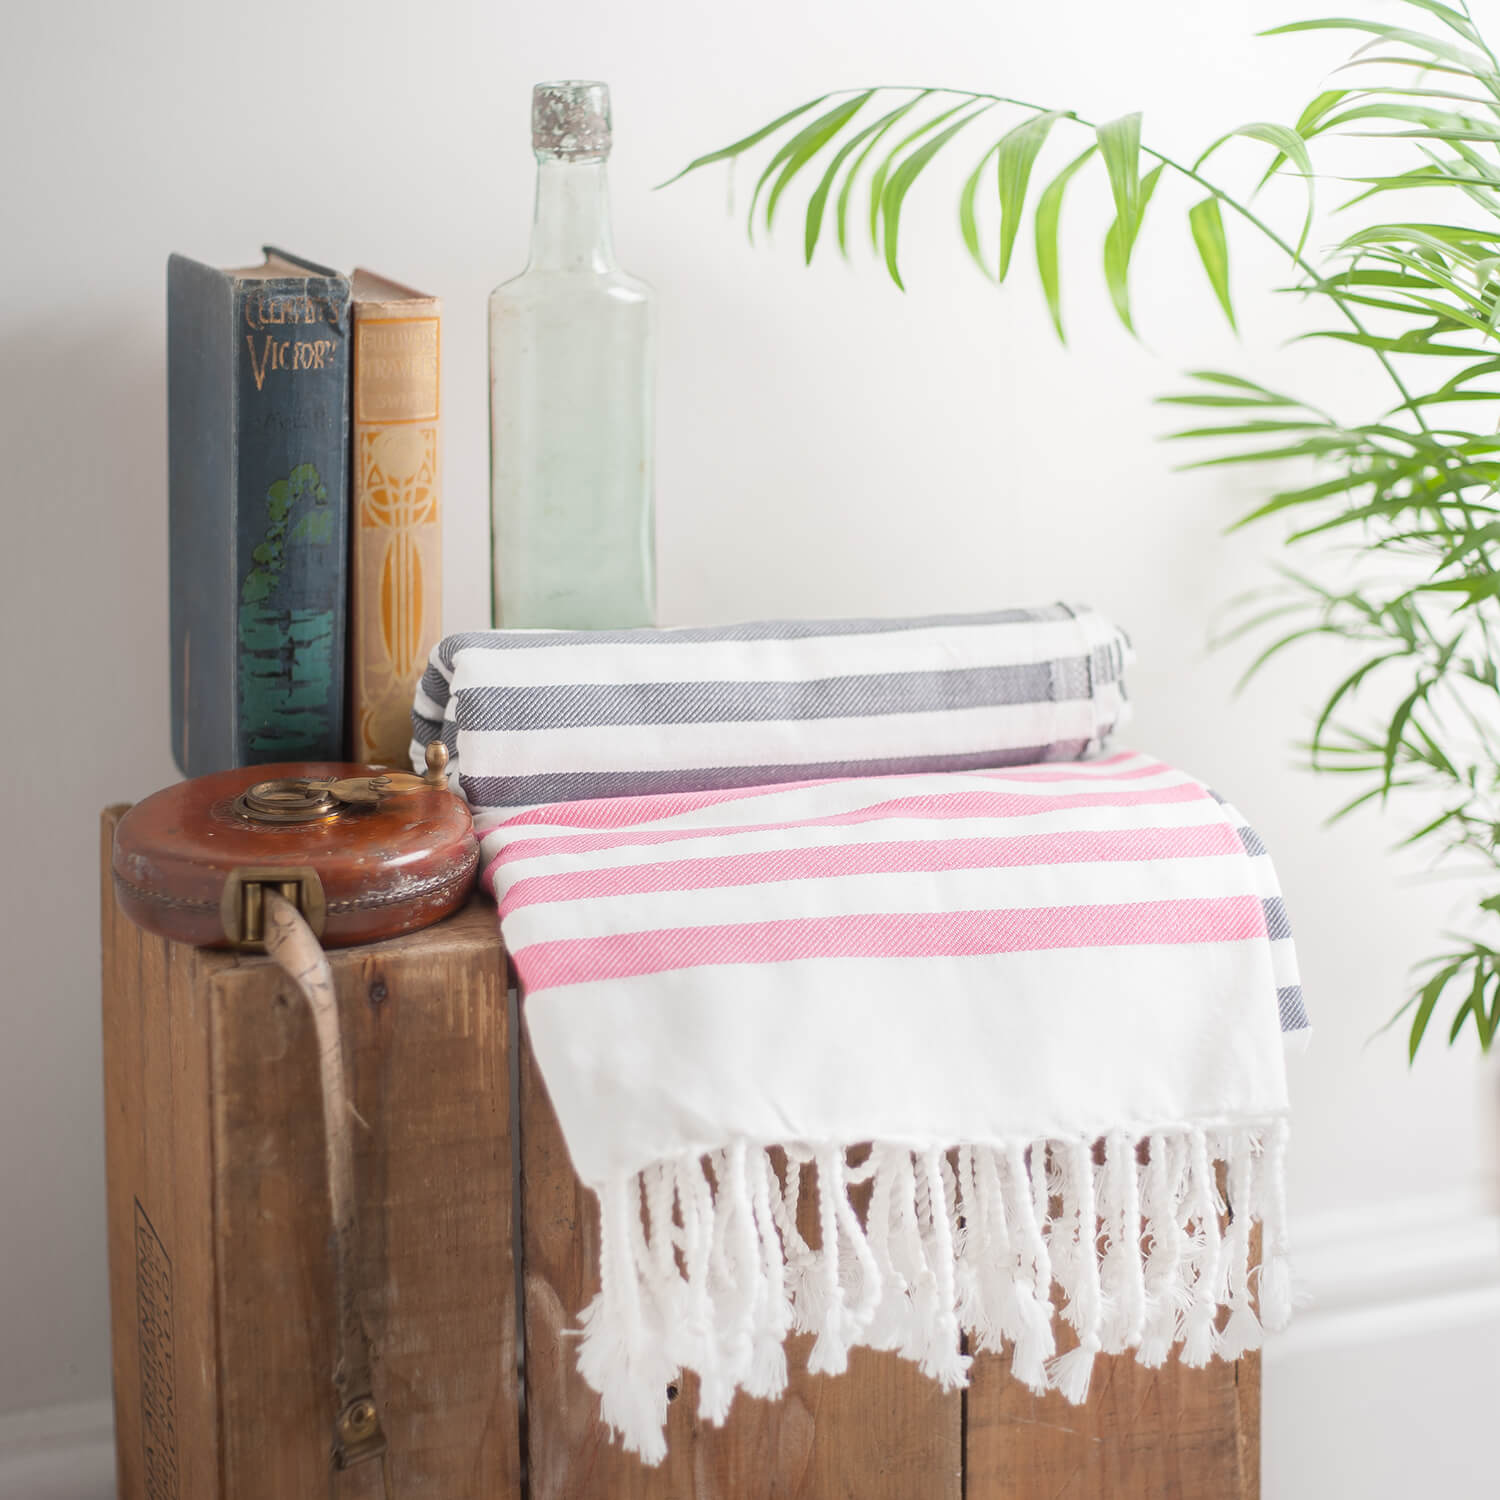 Palm plant leaves in this styled photograph of a towel / throw